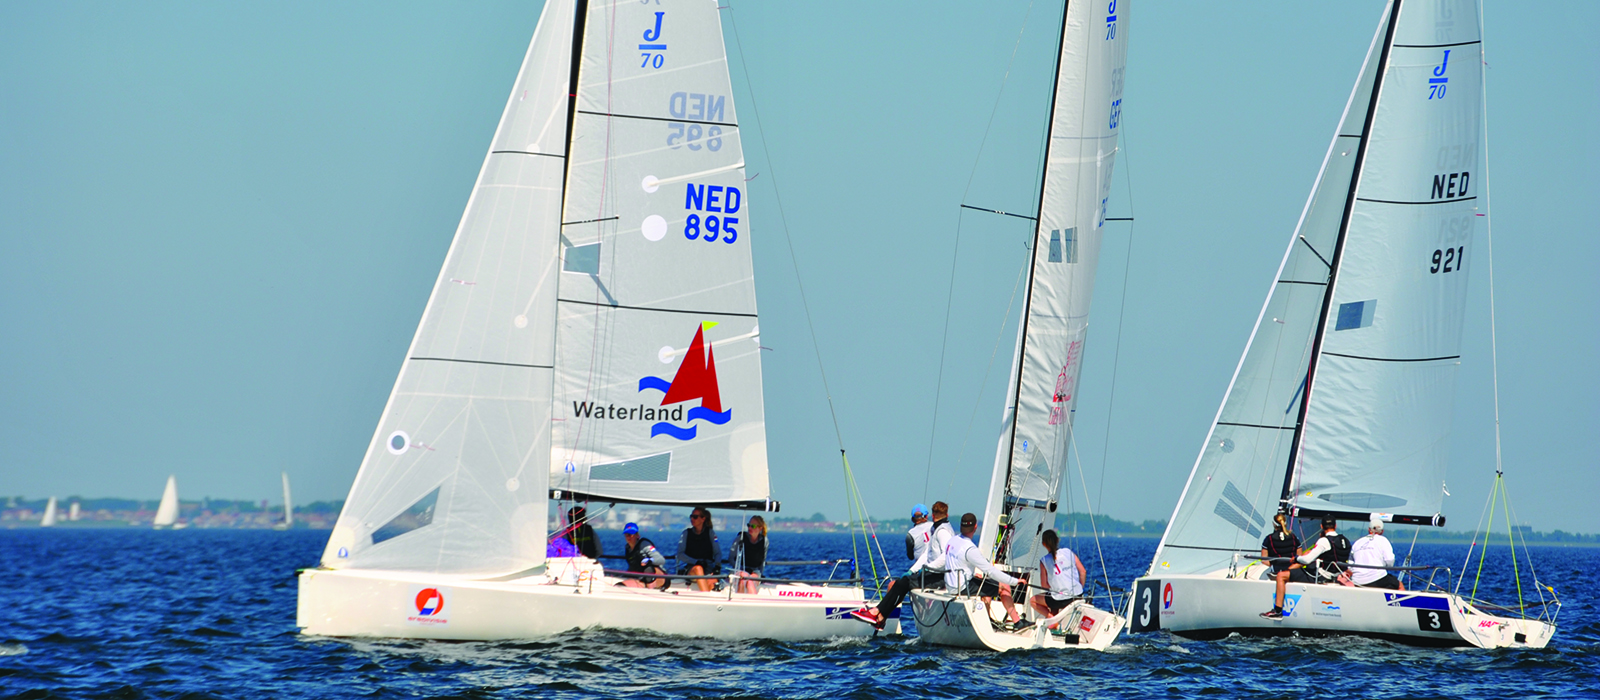 nrw cup She Sails J/70